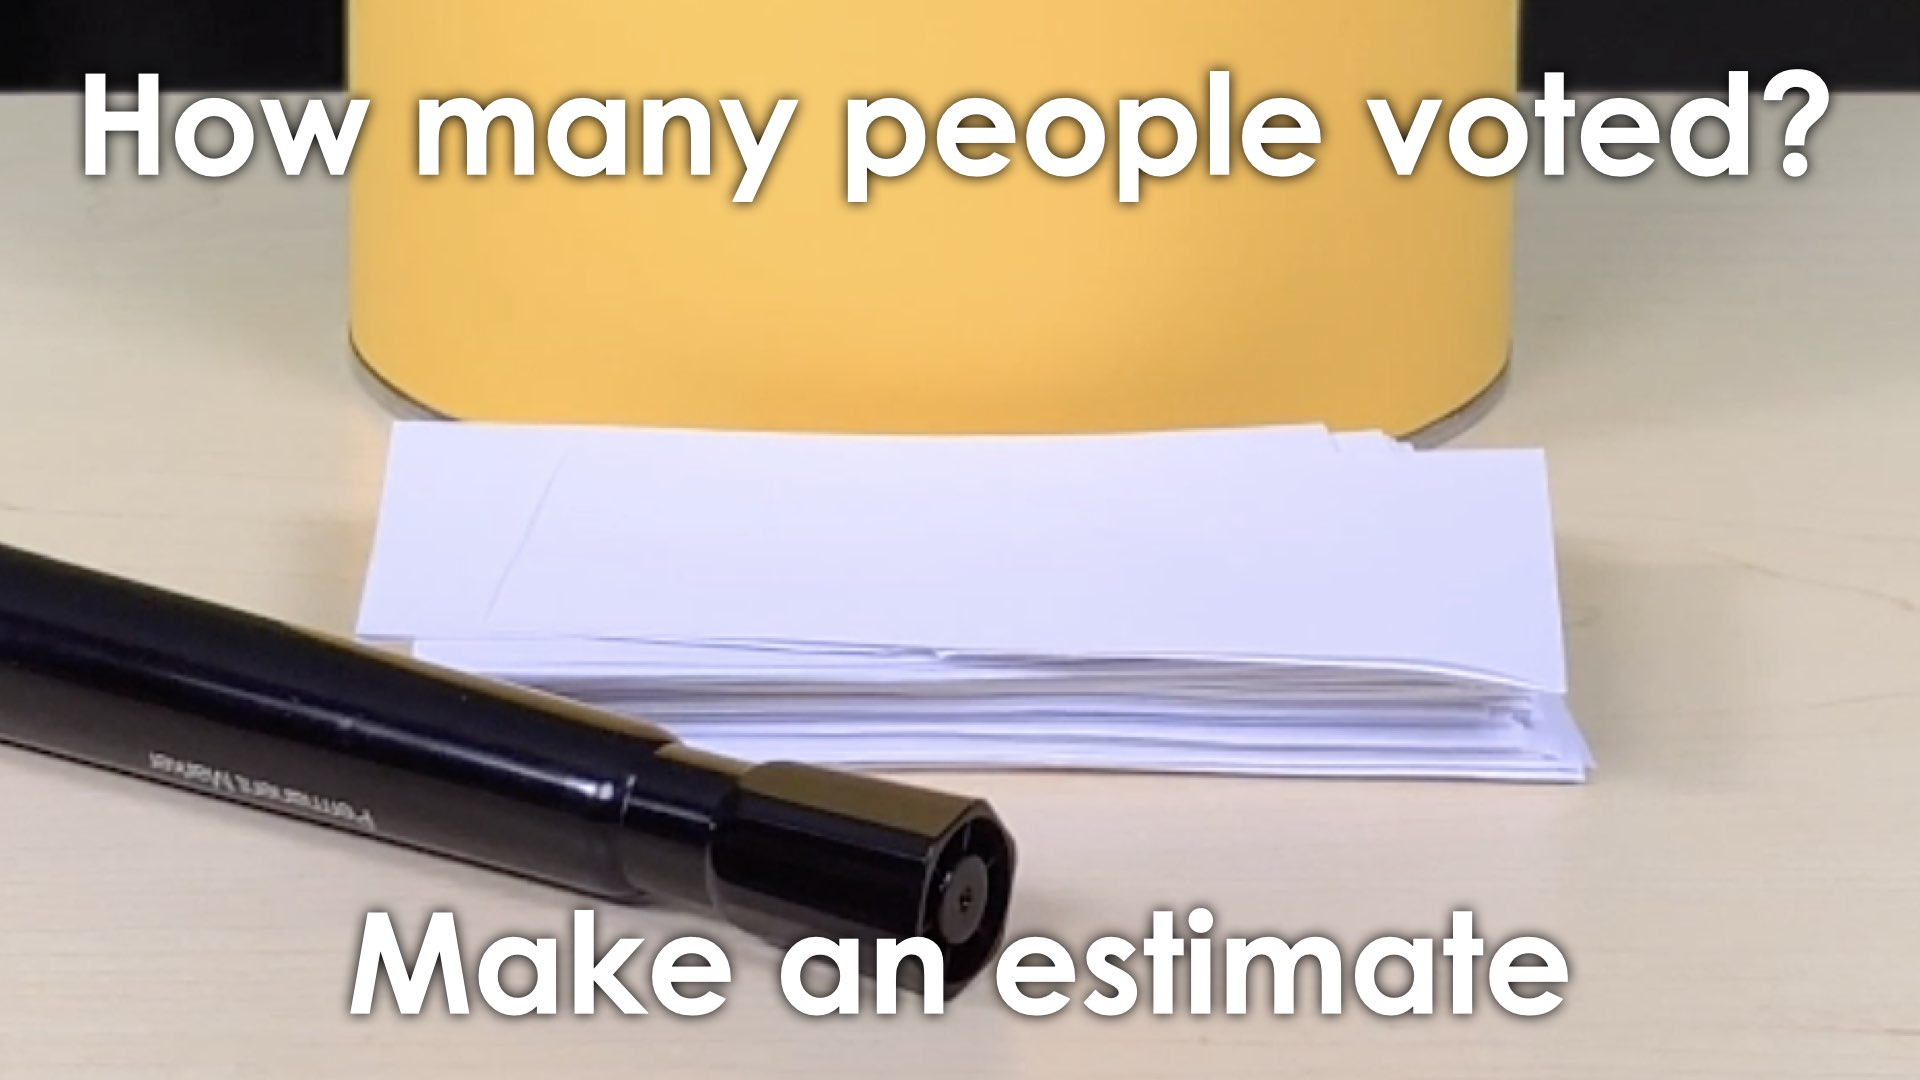 MMM Voting Booth Lesson.015 SPARK Make an estimate close up